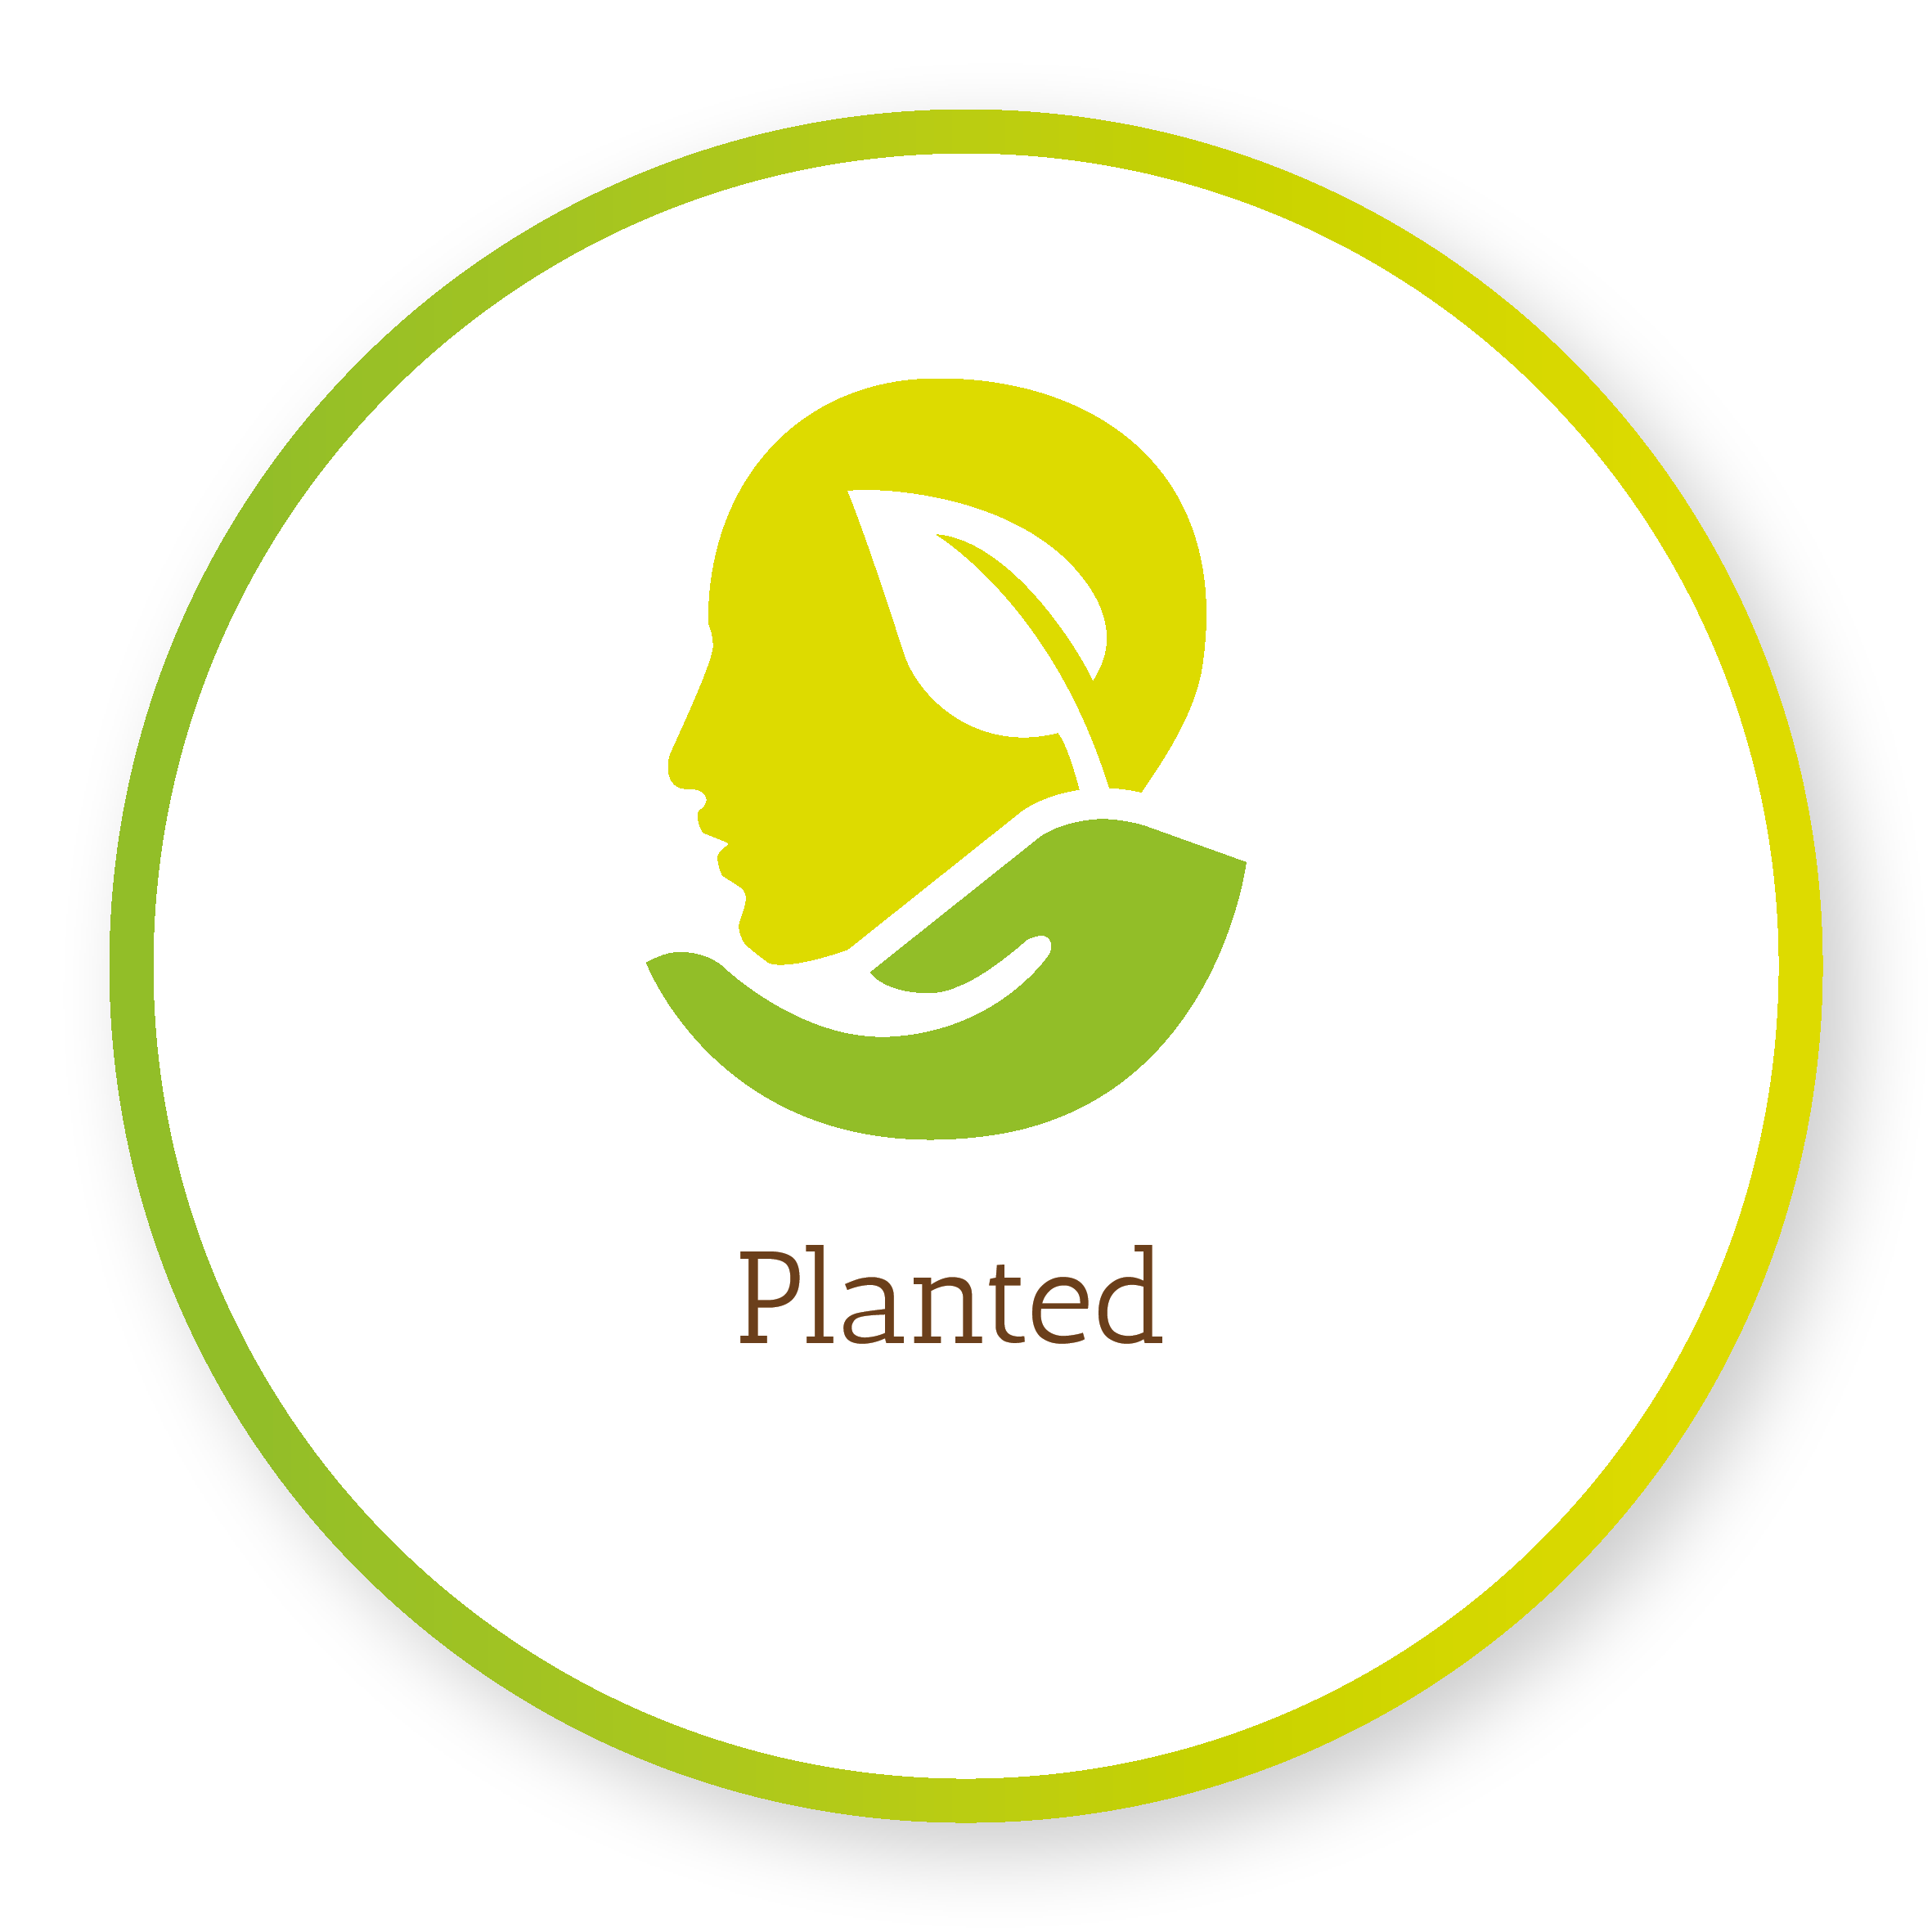 Planted